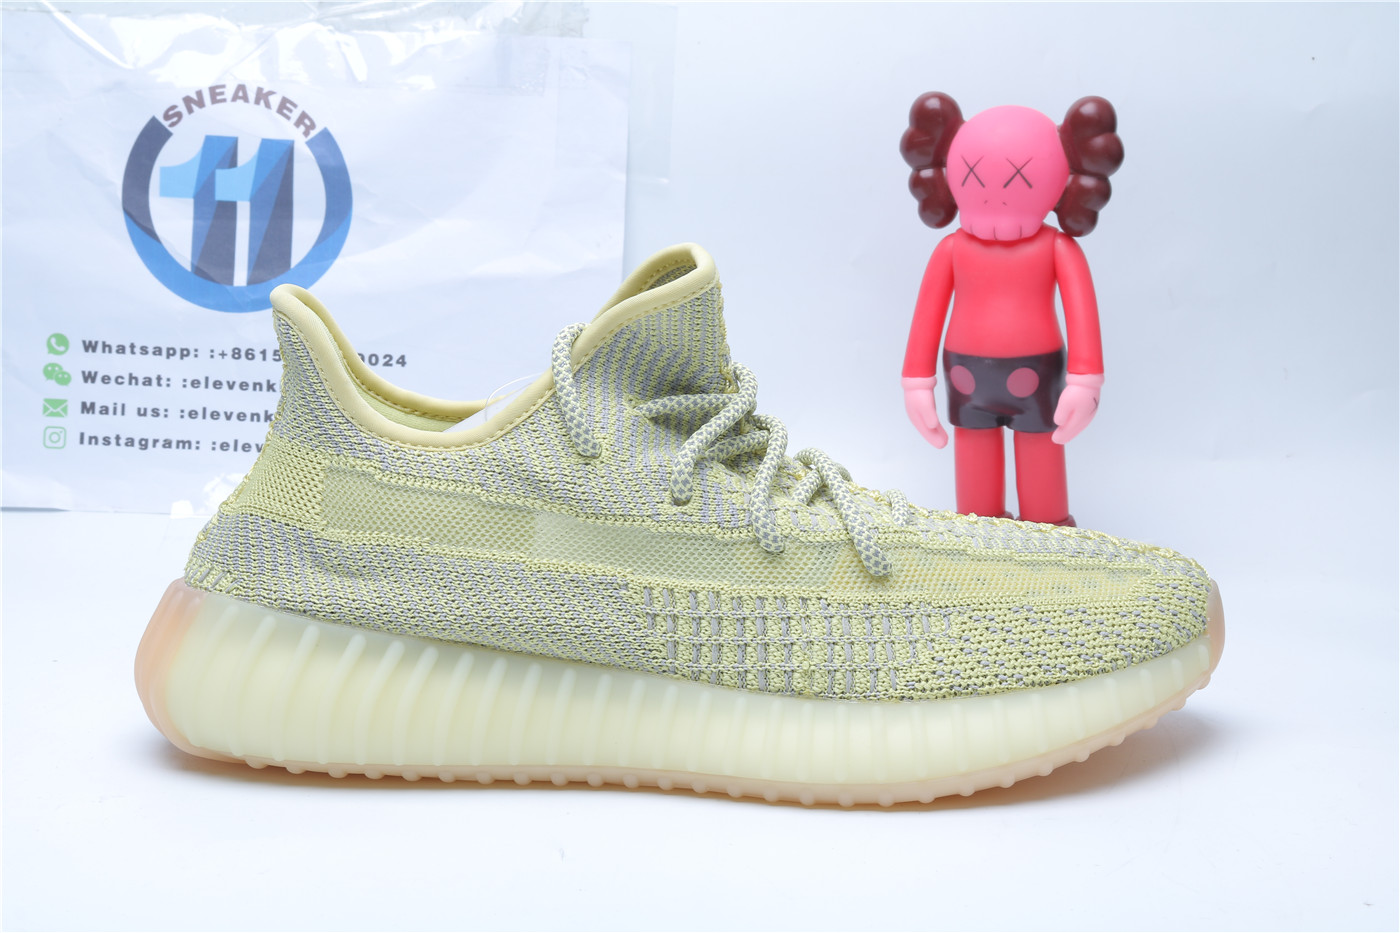 Adidas Yeezy Boost 350 V2 Antlia 3250,All Products : Eleven Kicks, Eleven Kicks